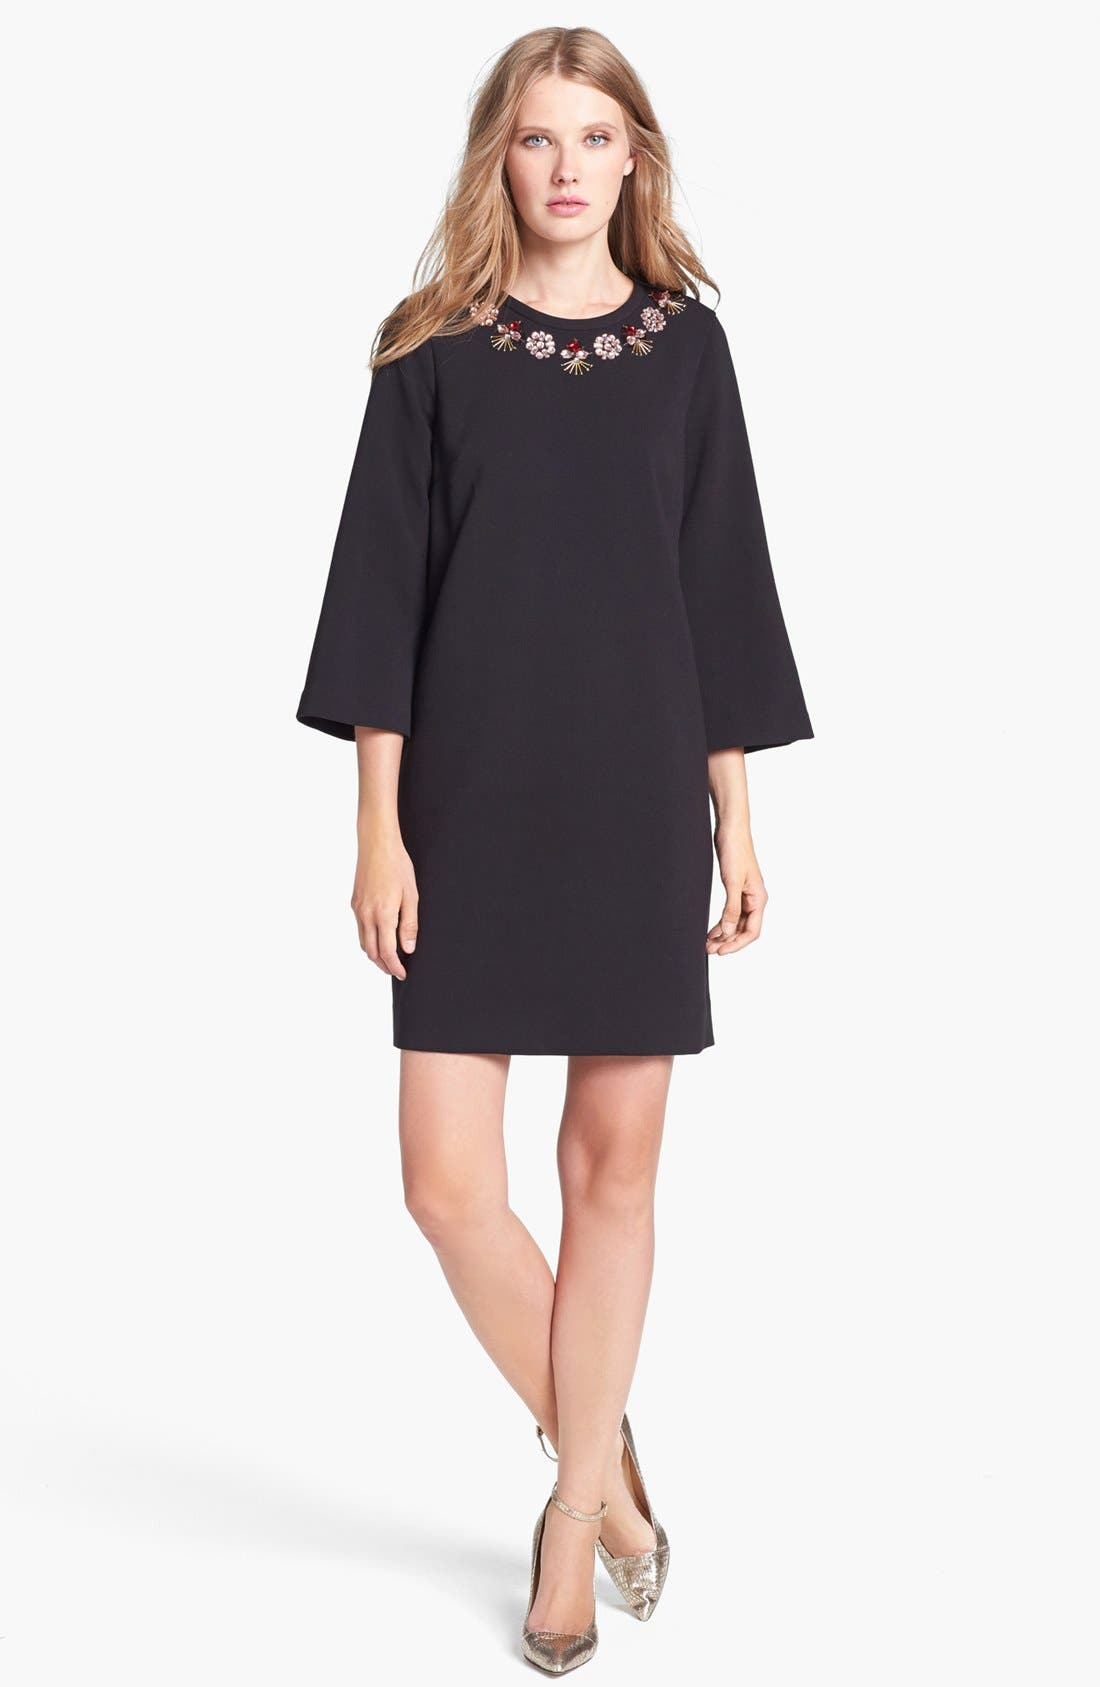 Alternate Image 1 Selected - kate spade new york 'lucy' embellished stretch shift dress